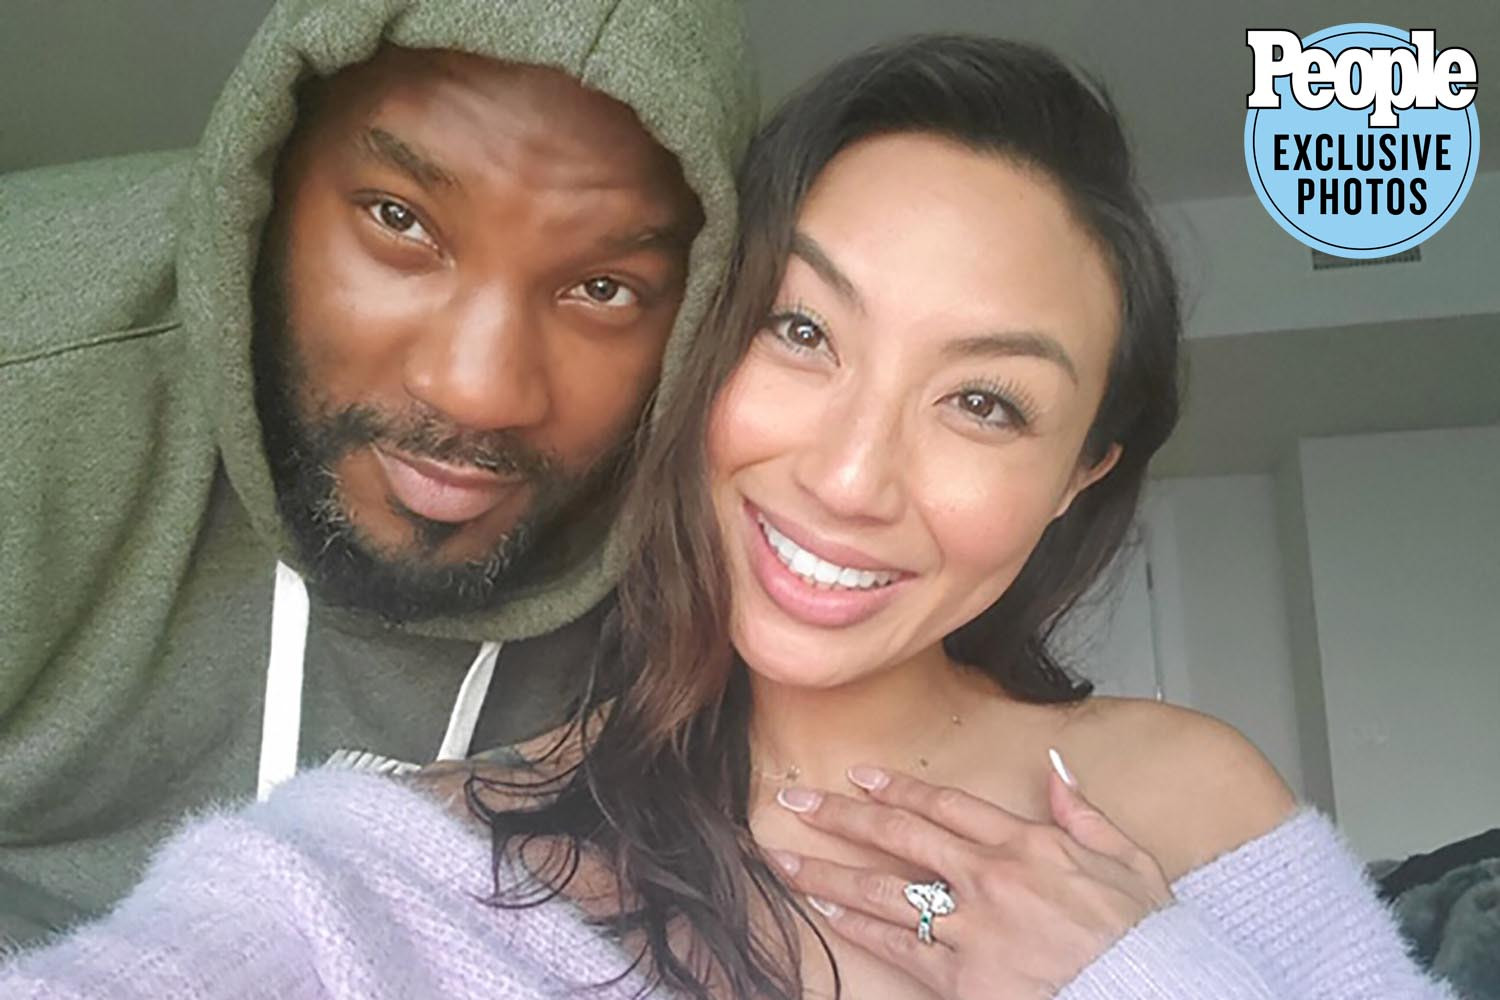 Rapper Jeezy and girlfriend Jeannie Mai get engaged during romantic 'quarantine date night' (Photos), All9ja